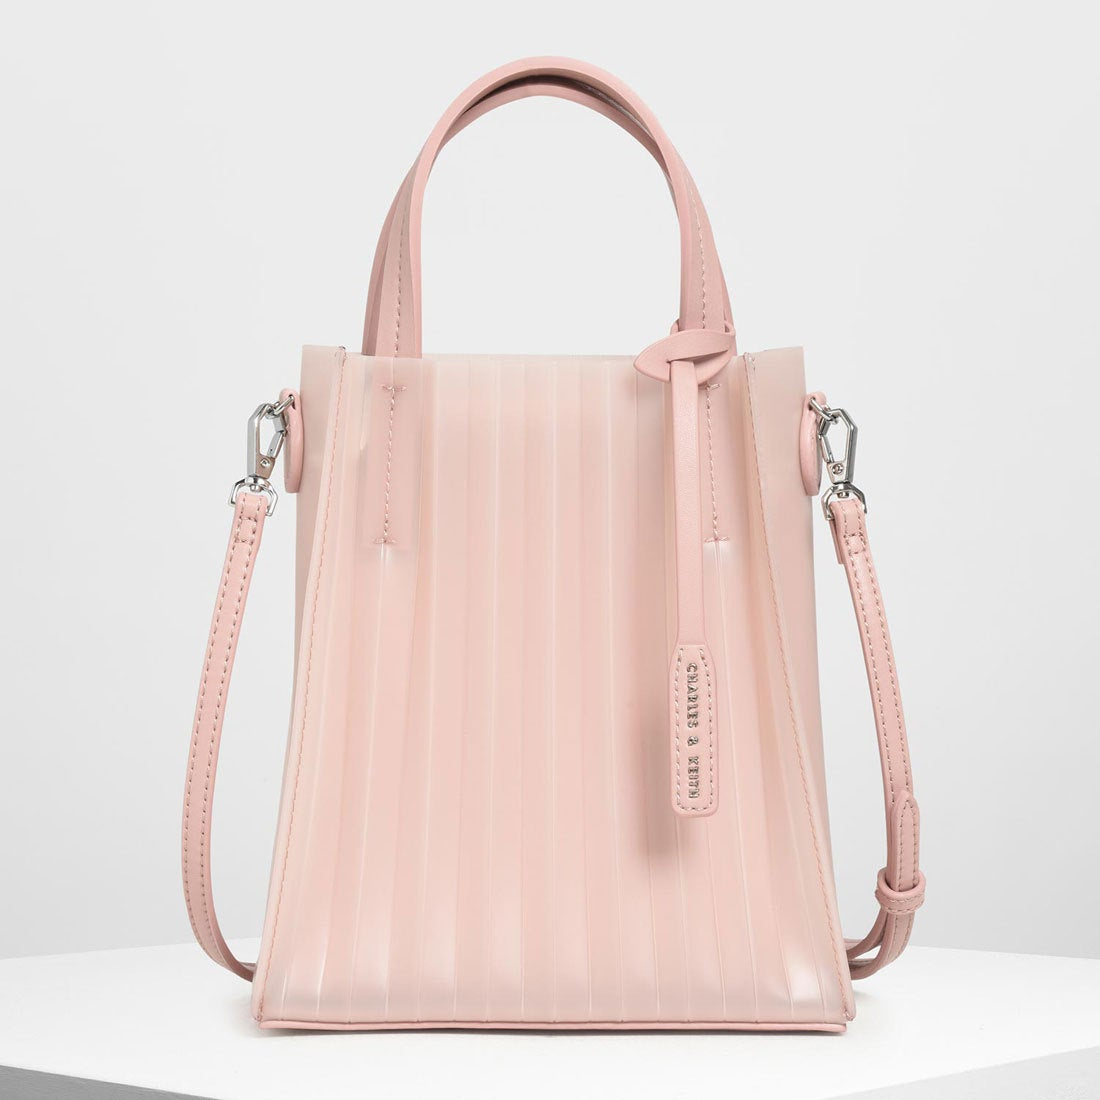 3ce398331833 CHARLES & KEITH トランスルーセント トートバッグ / Translucent Tote Bag (Pink)-CHARLES &  KEITH公式オンラインストア